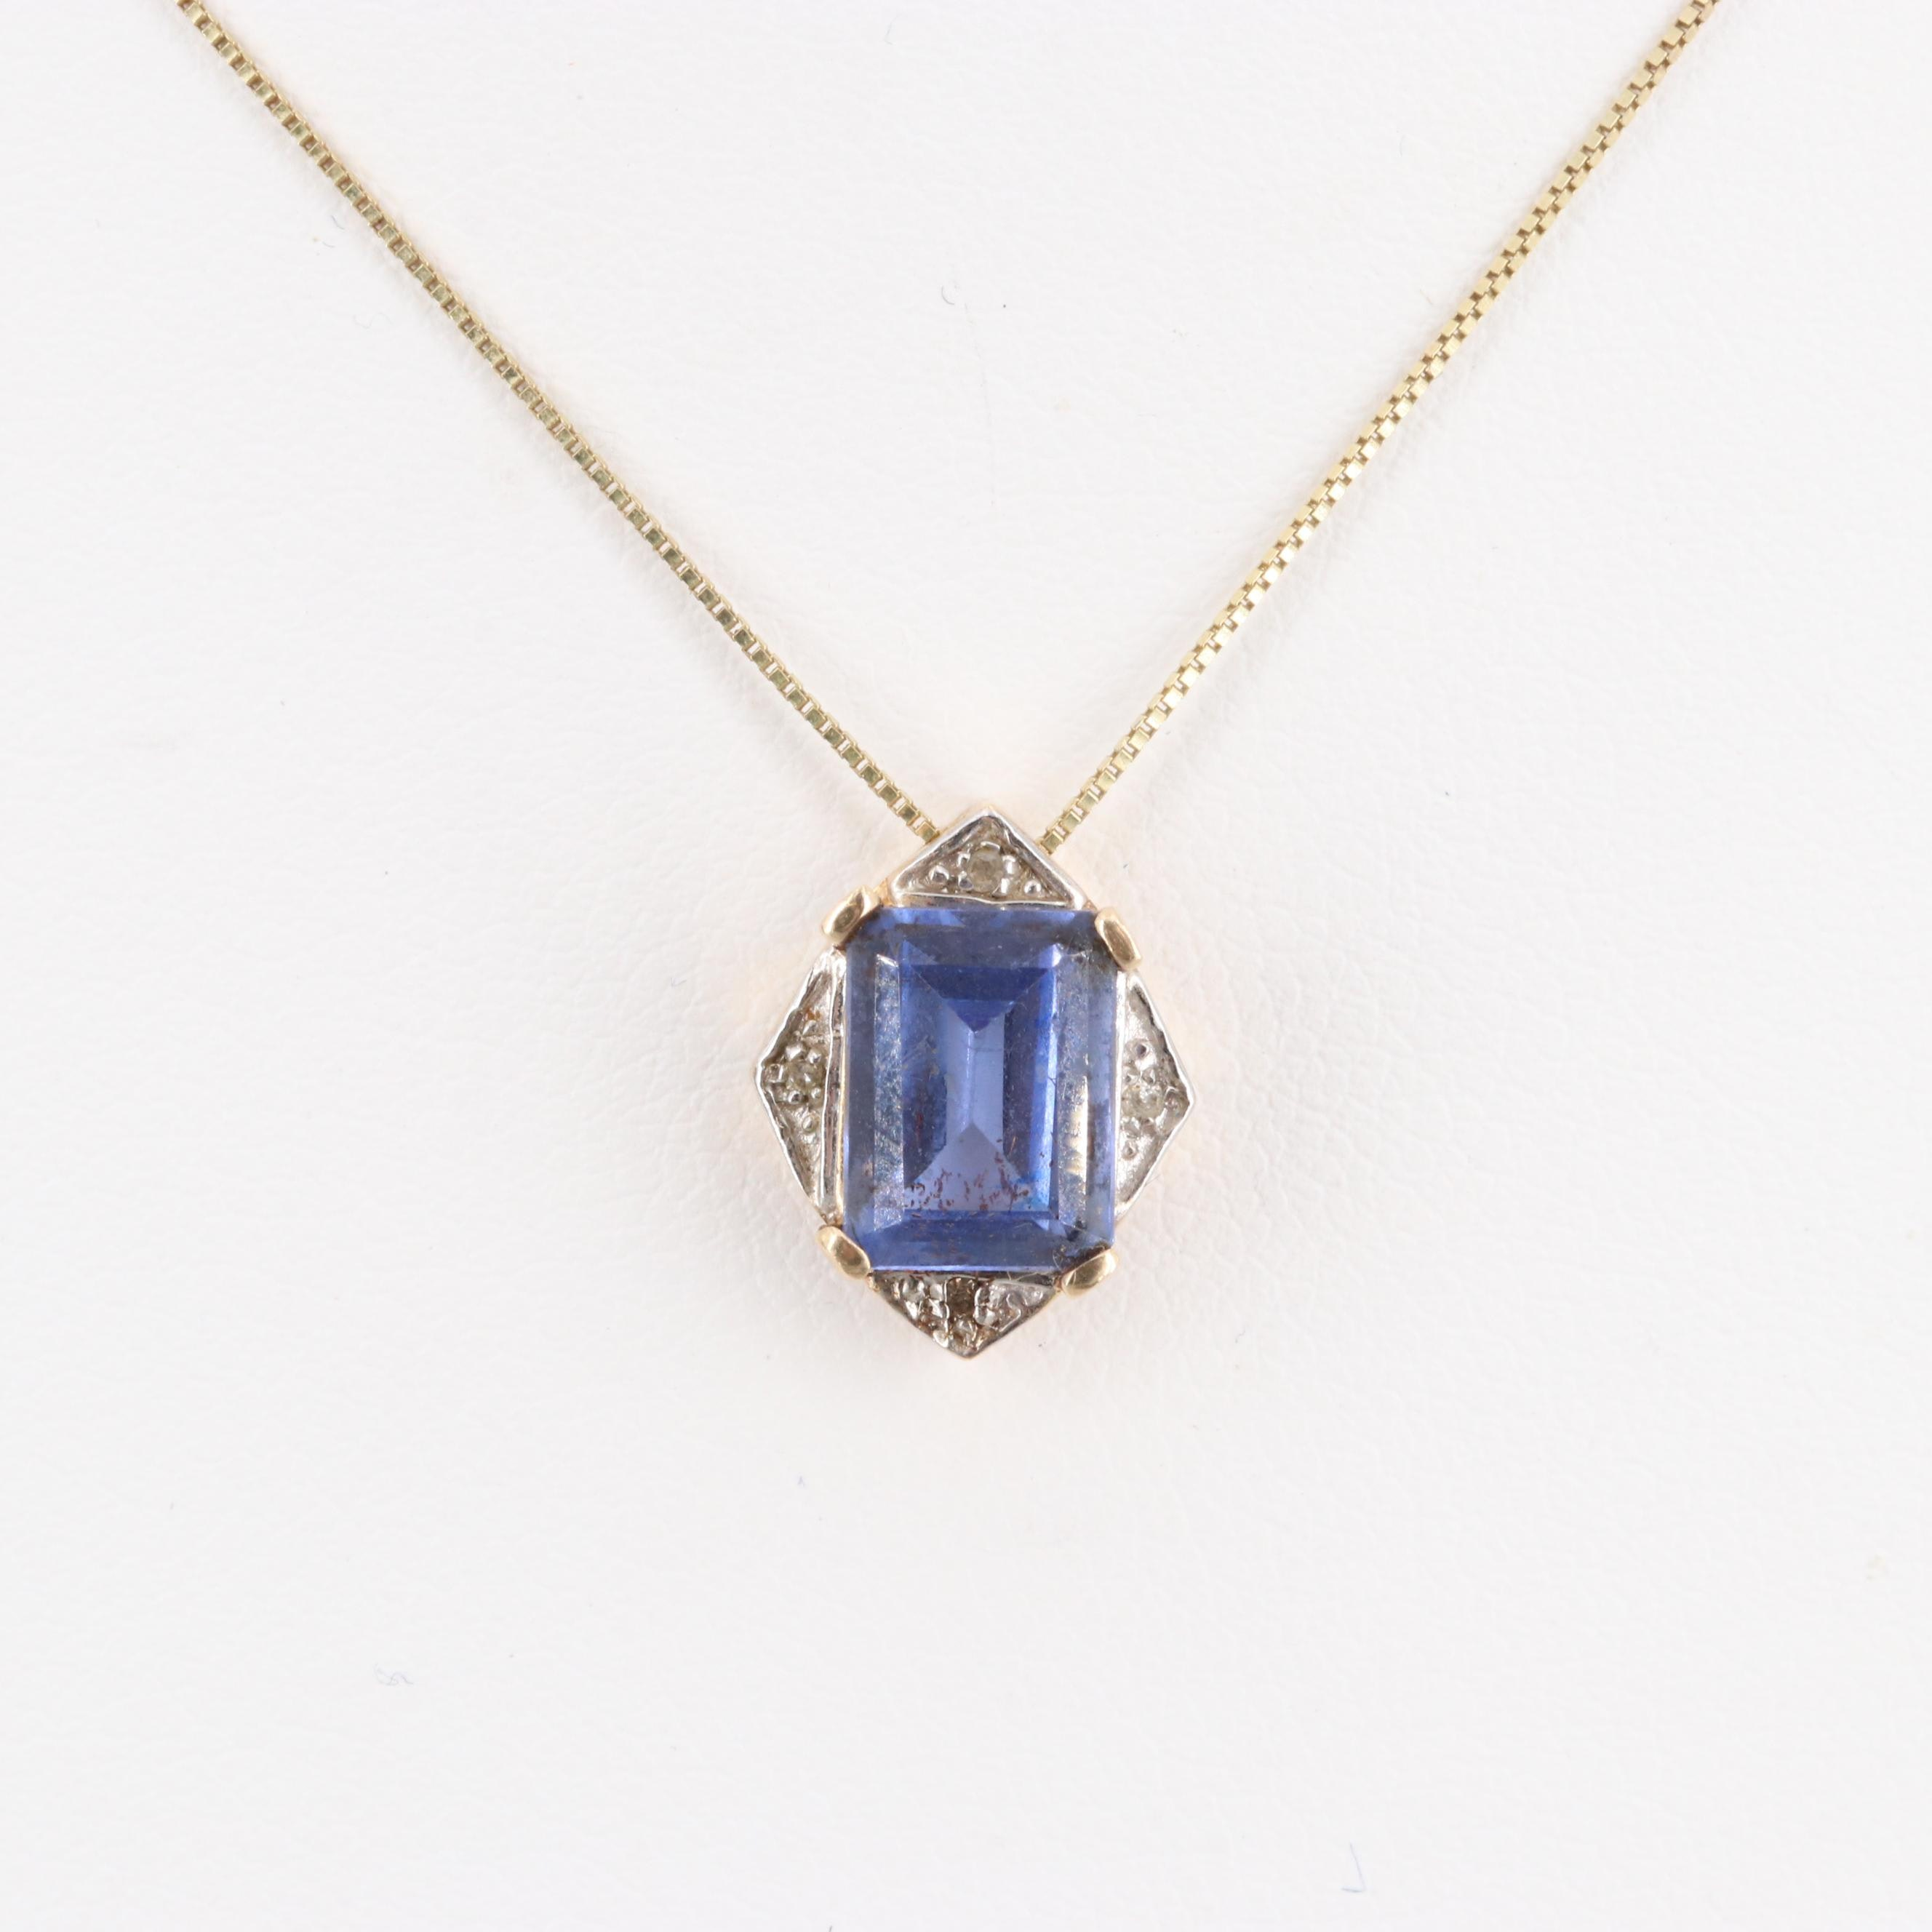 10K Yellow Gold Glass and Diamond Pendant Necklace